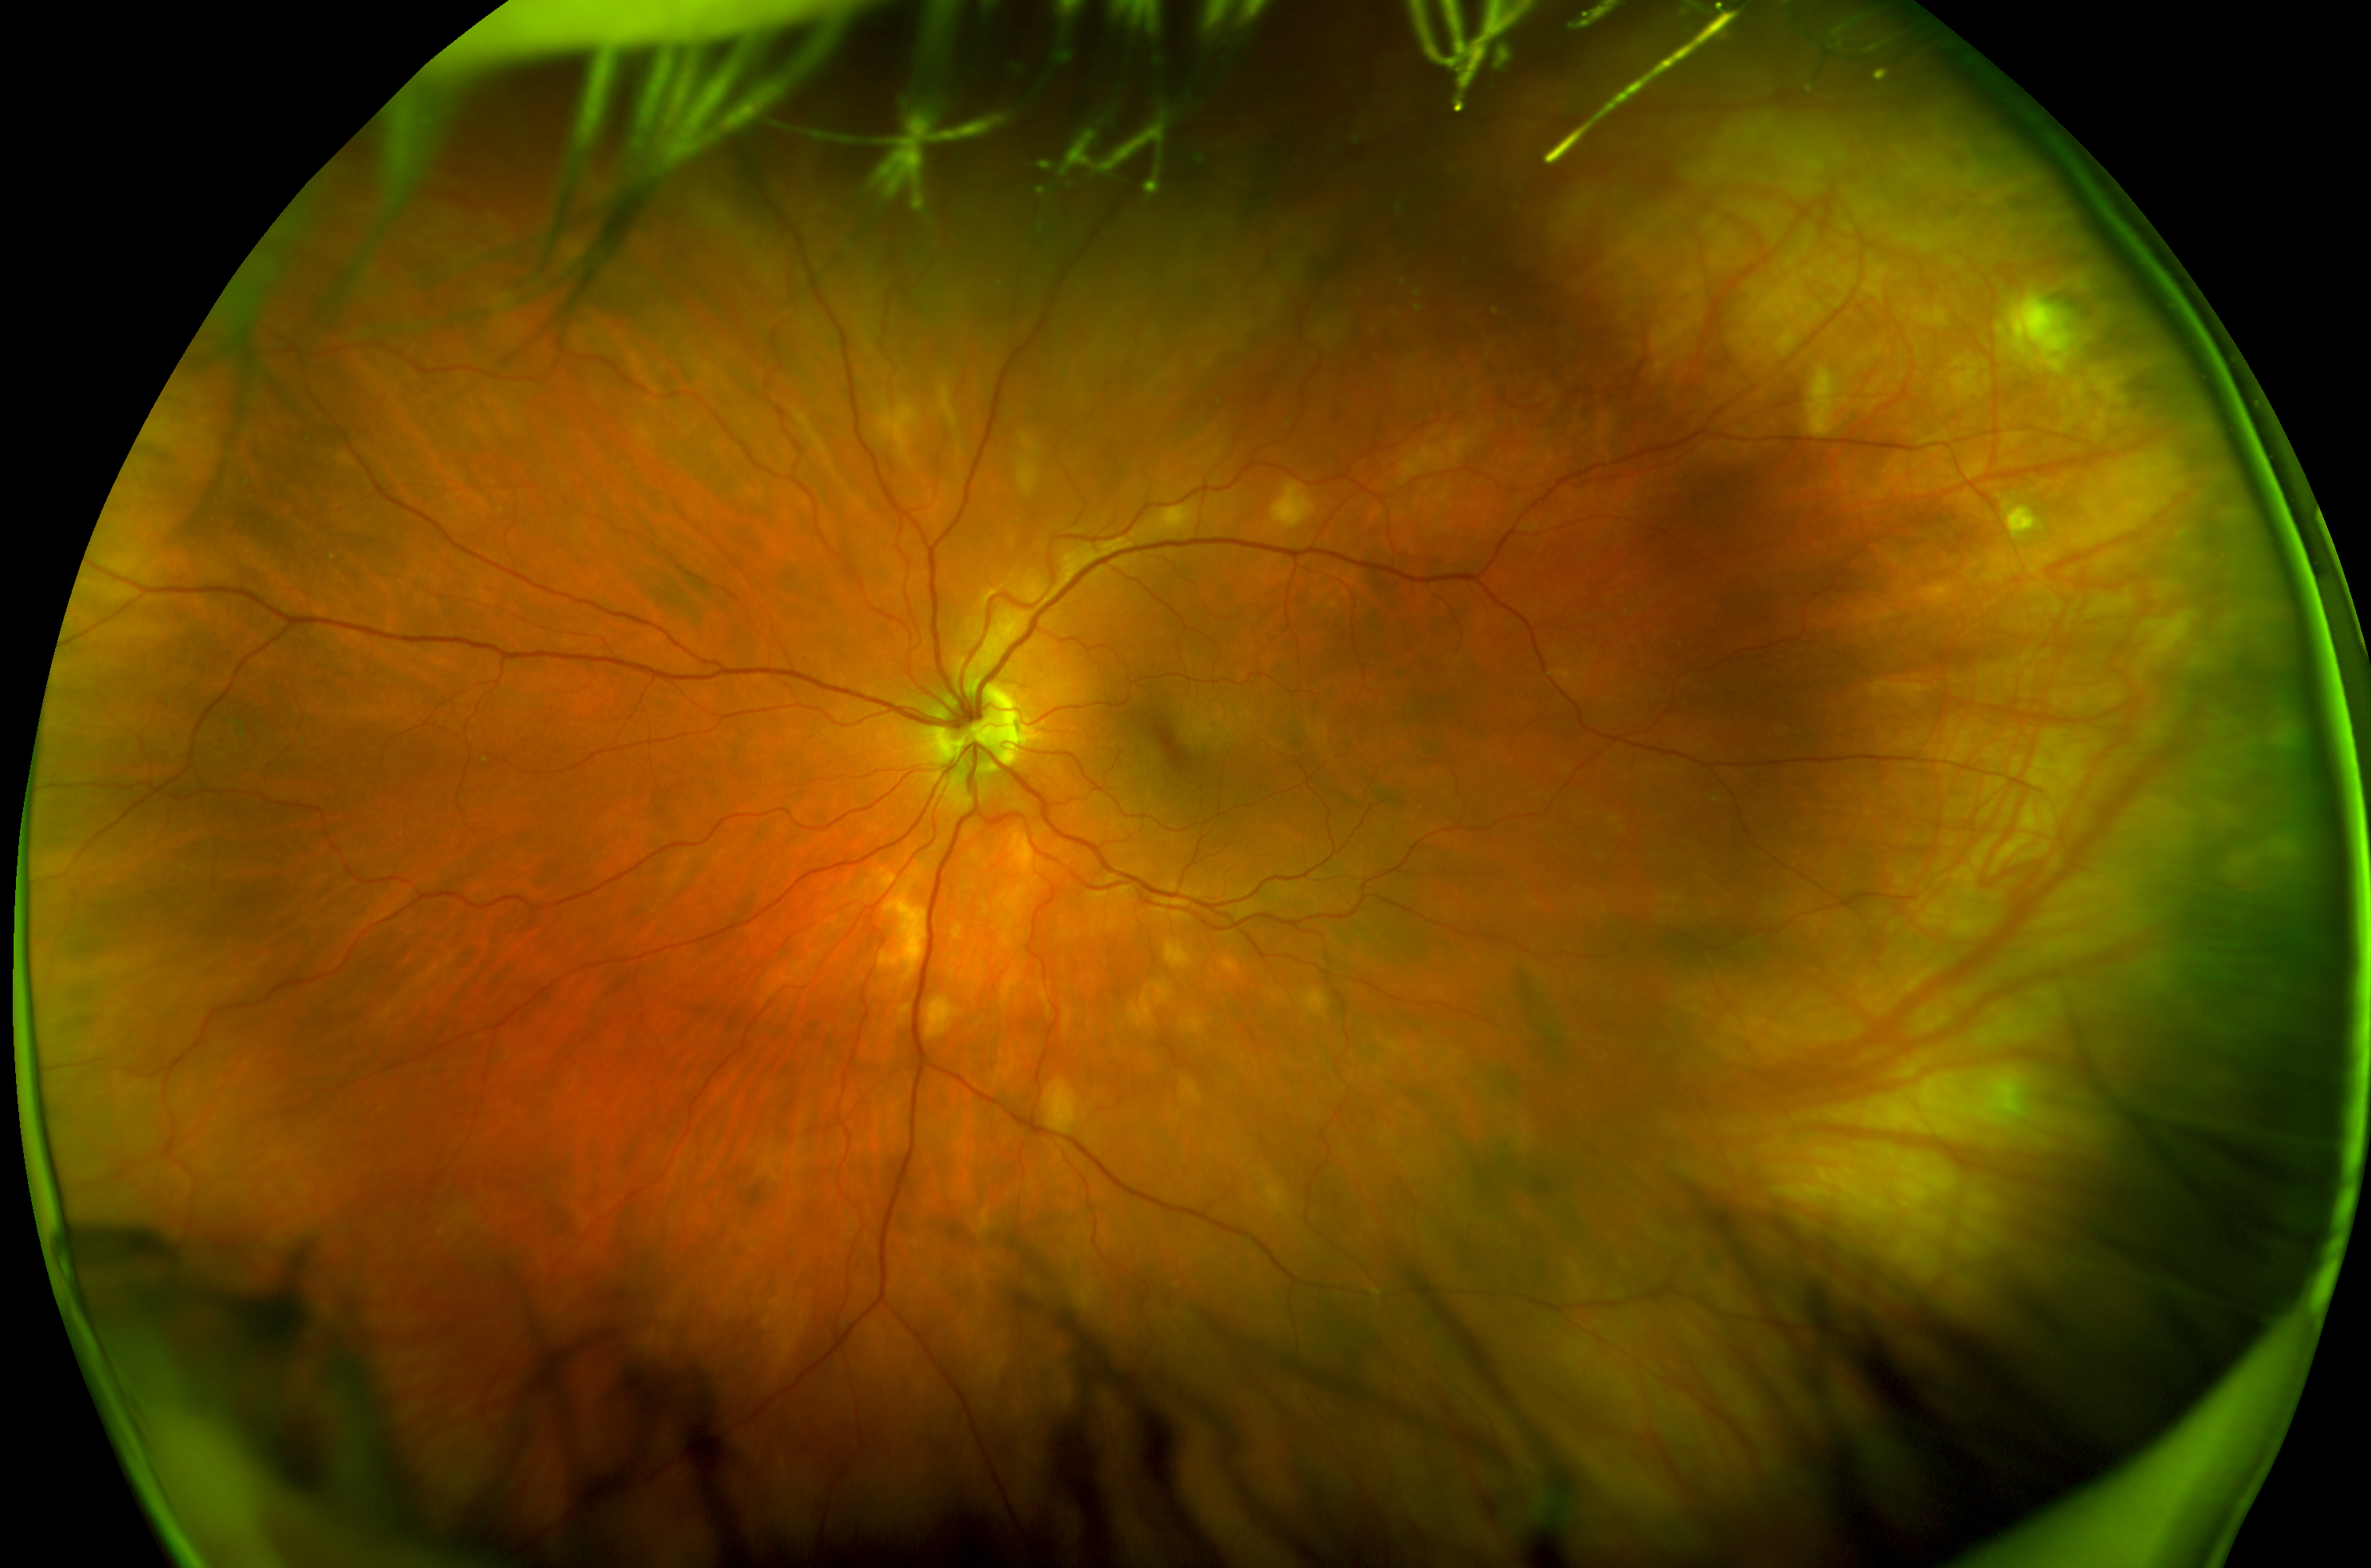 color birdshot versus posterior uveitis with plaques from sarcoidosis daytona